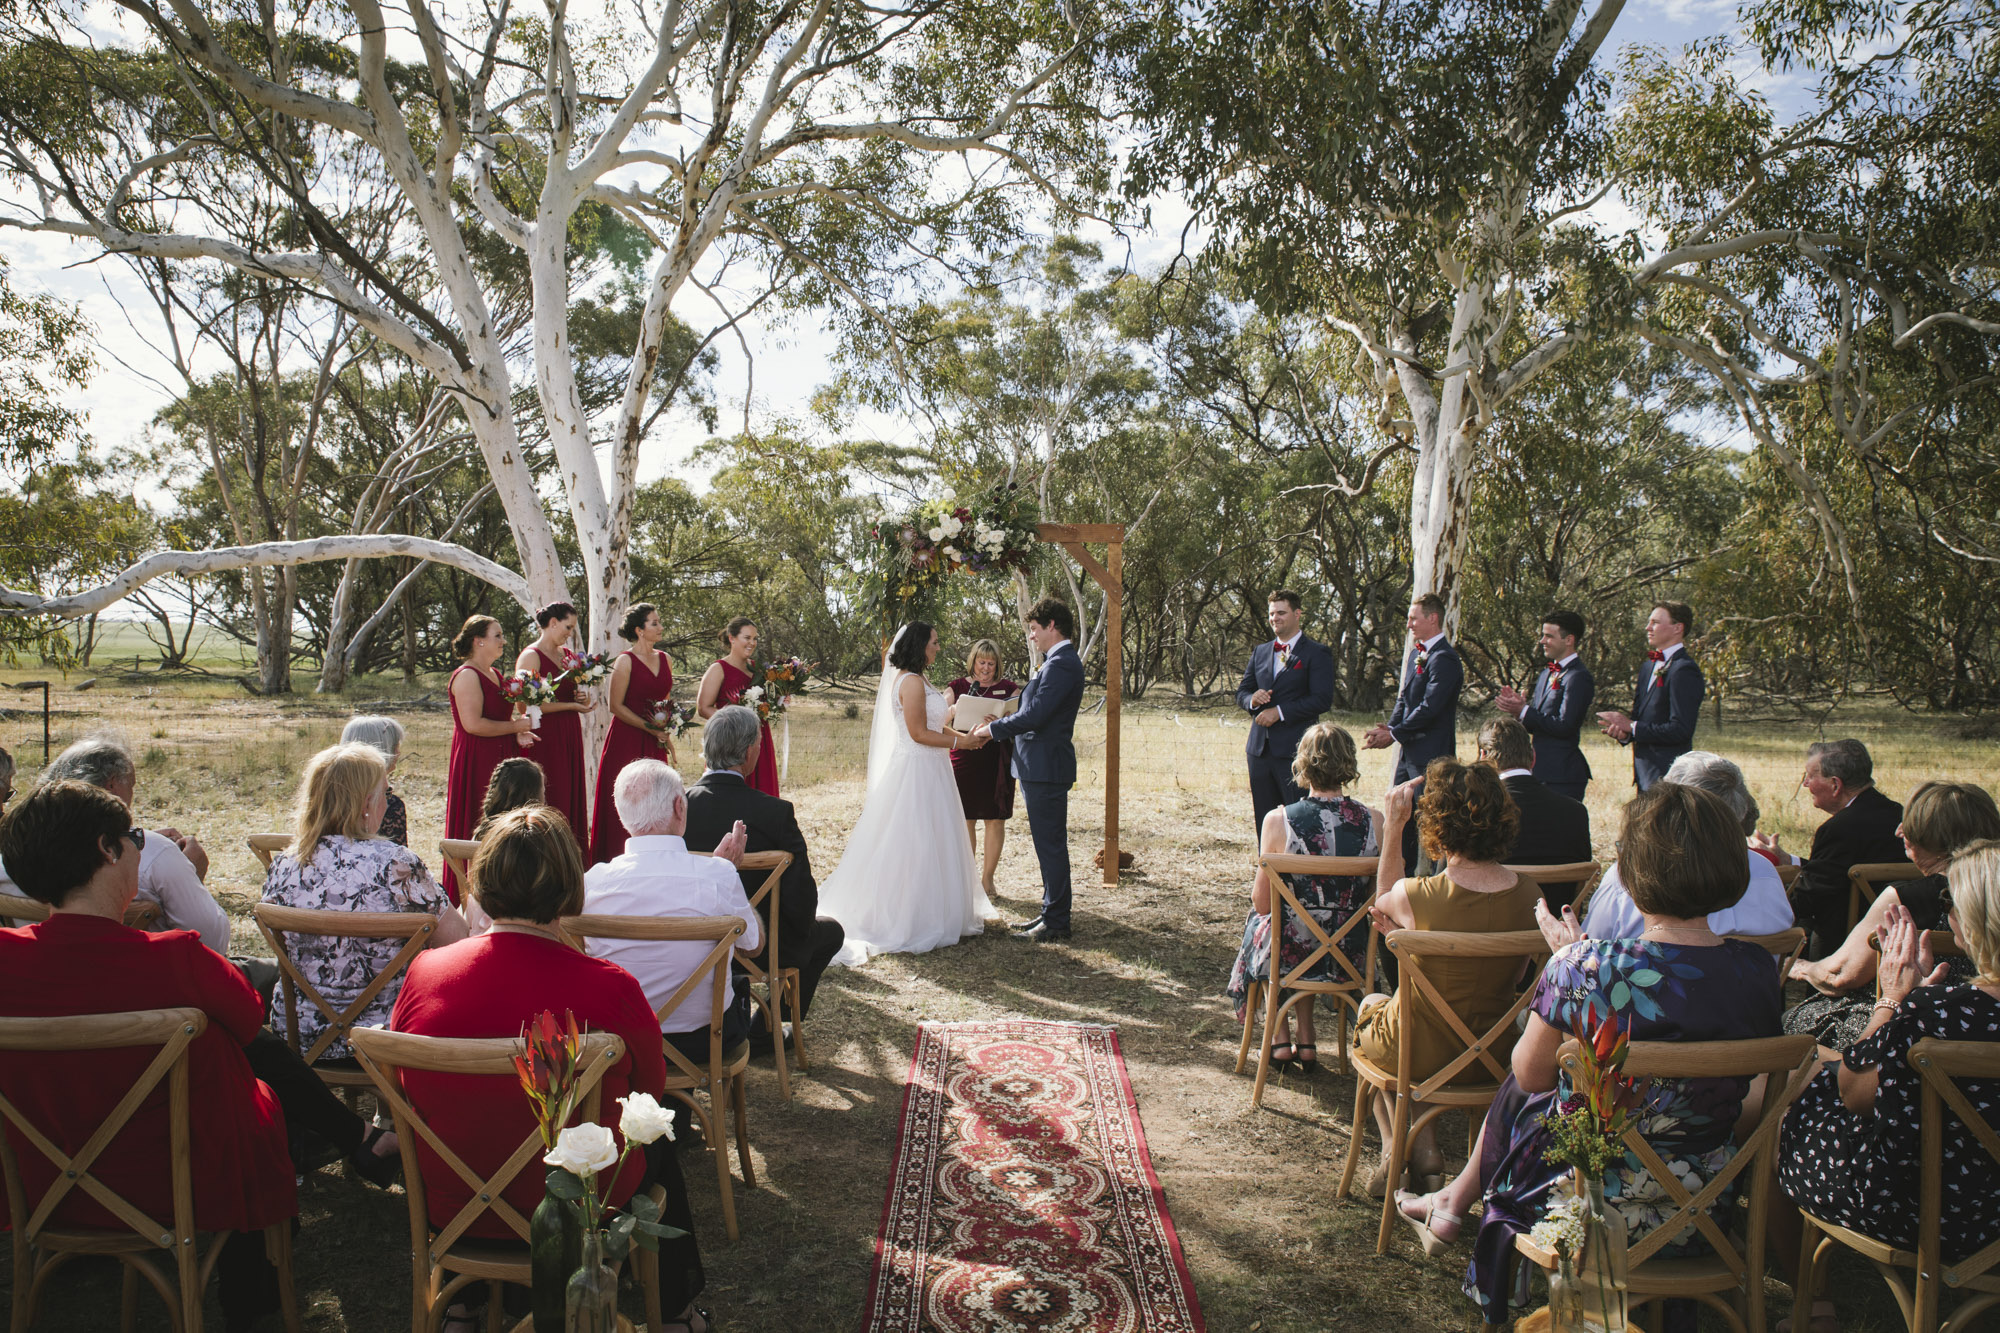 Angie-Roe-Photography-Wedding-Perth-Northam-Wheatbelt-Country-Rural (85).jpg